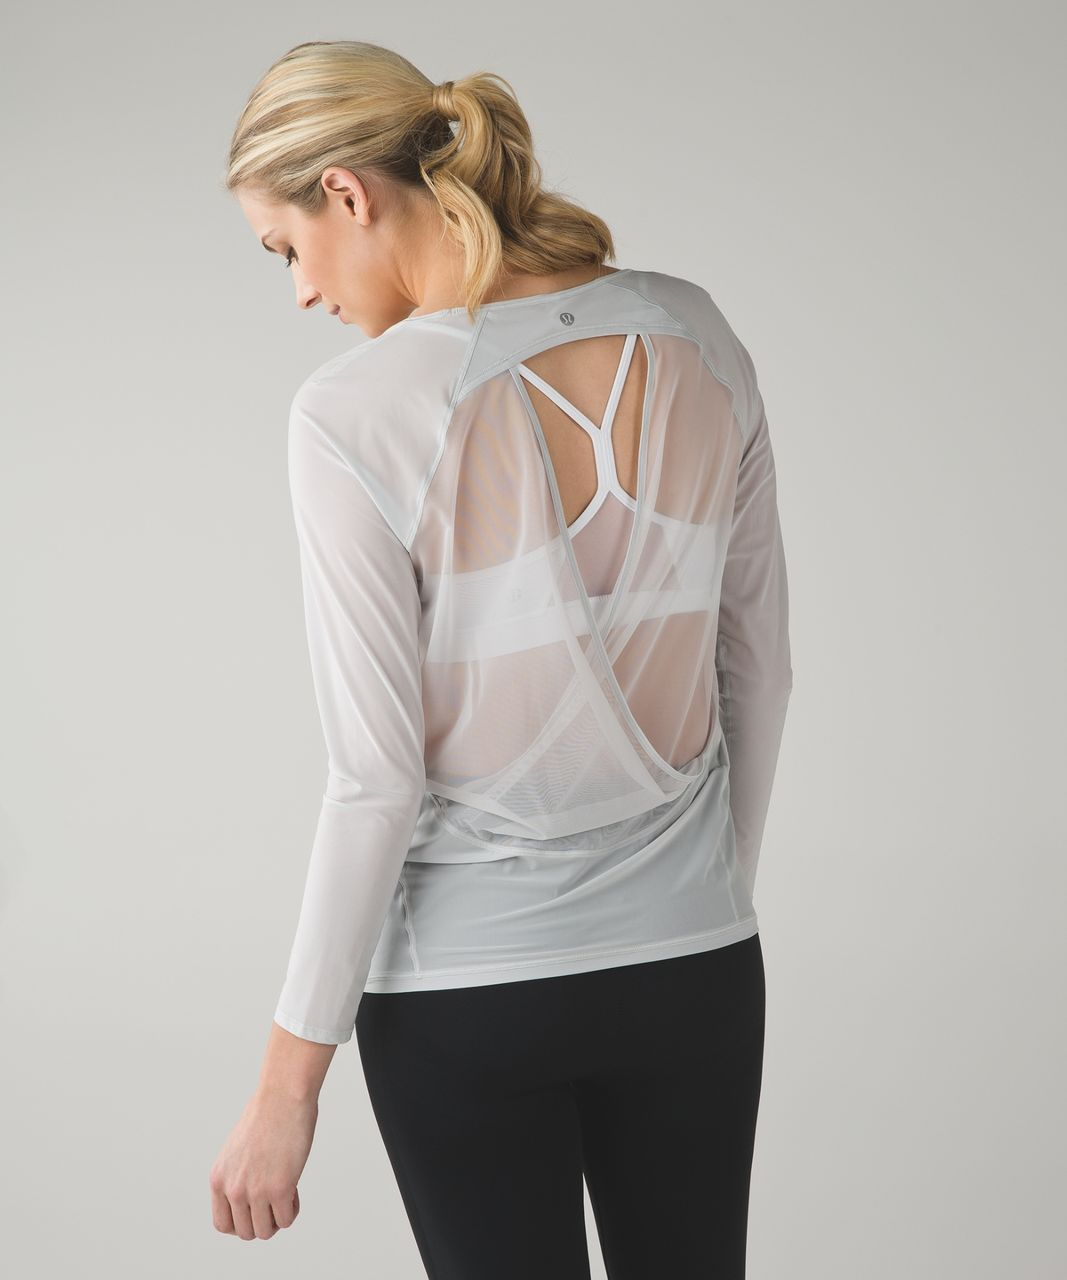 Lululemon If Youre Lucky Long Sleeve Tee II - Silver Spoon